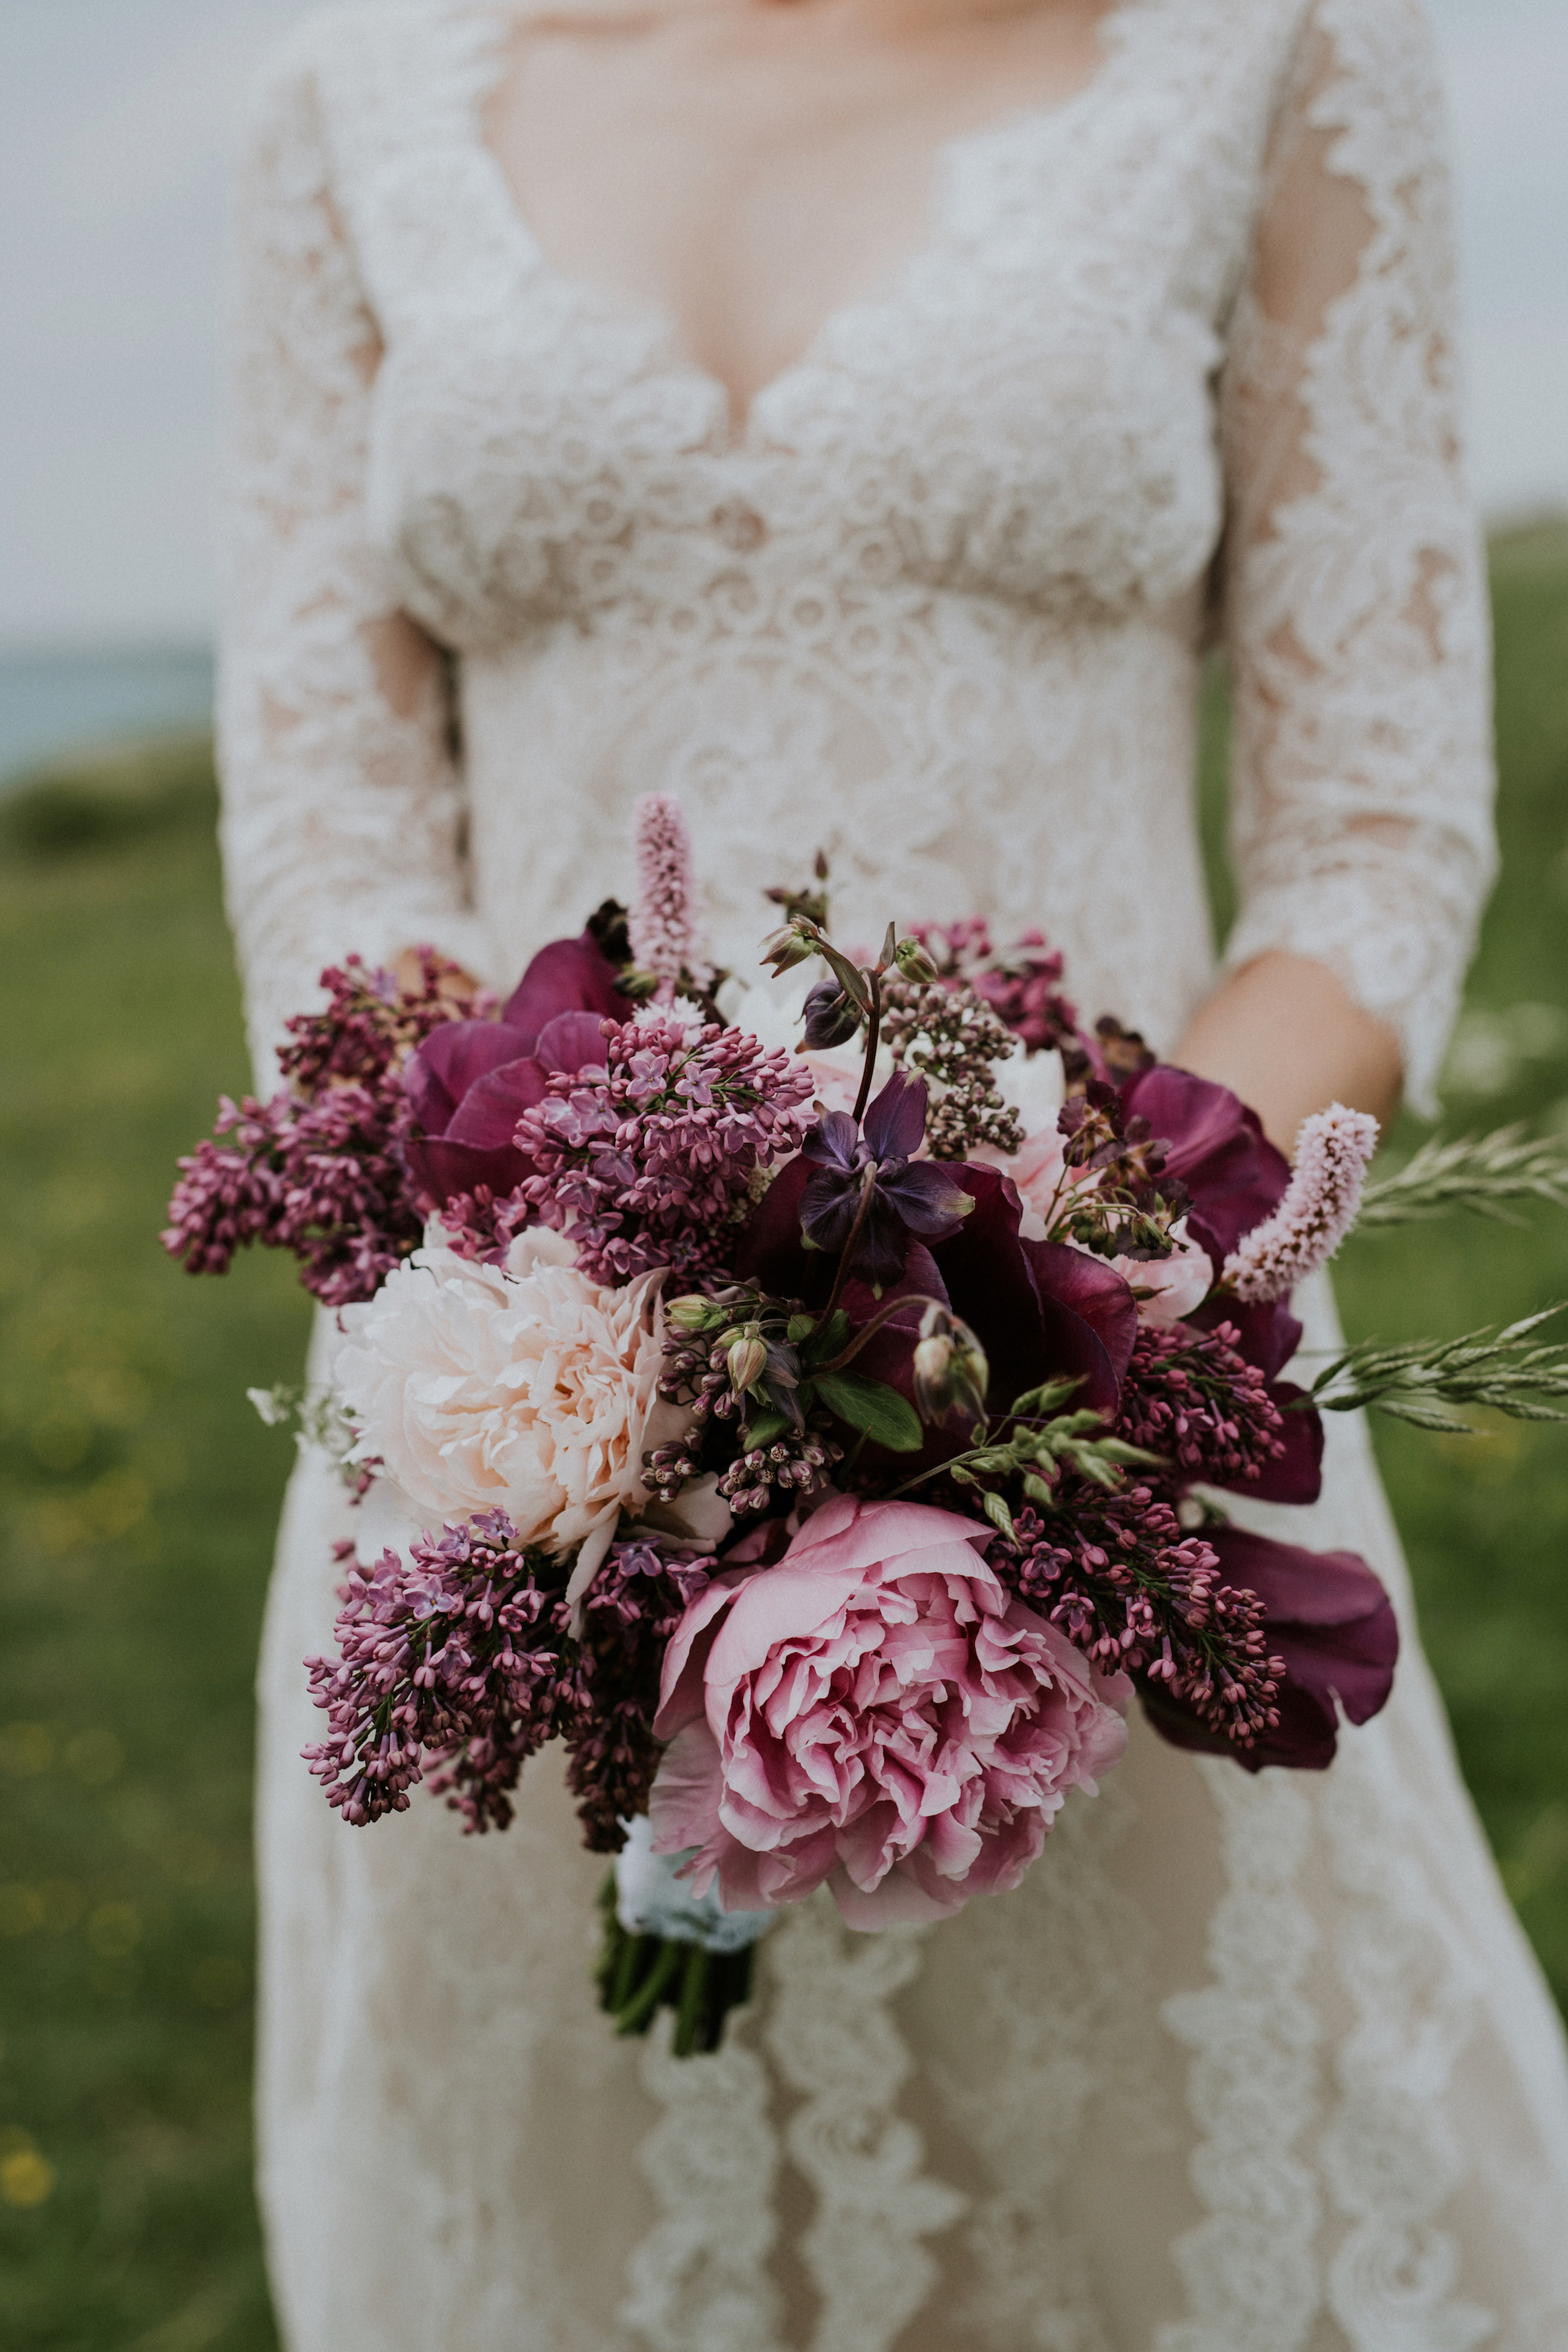 Lilac Bouquet in Shades of Pink